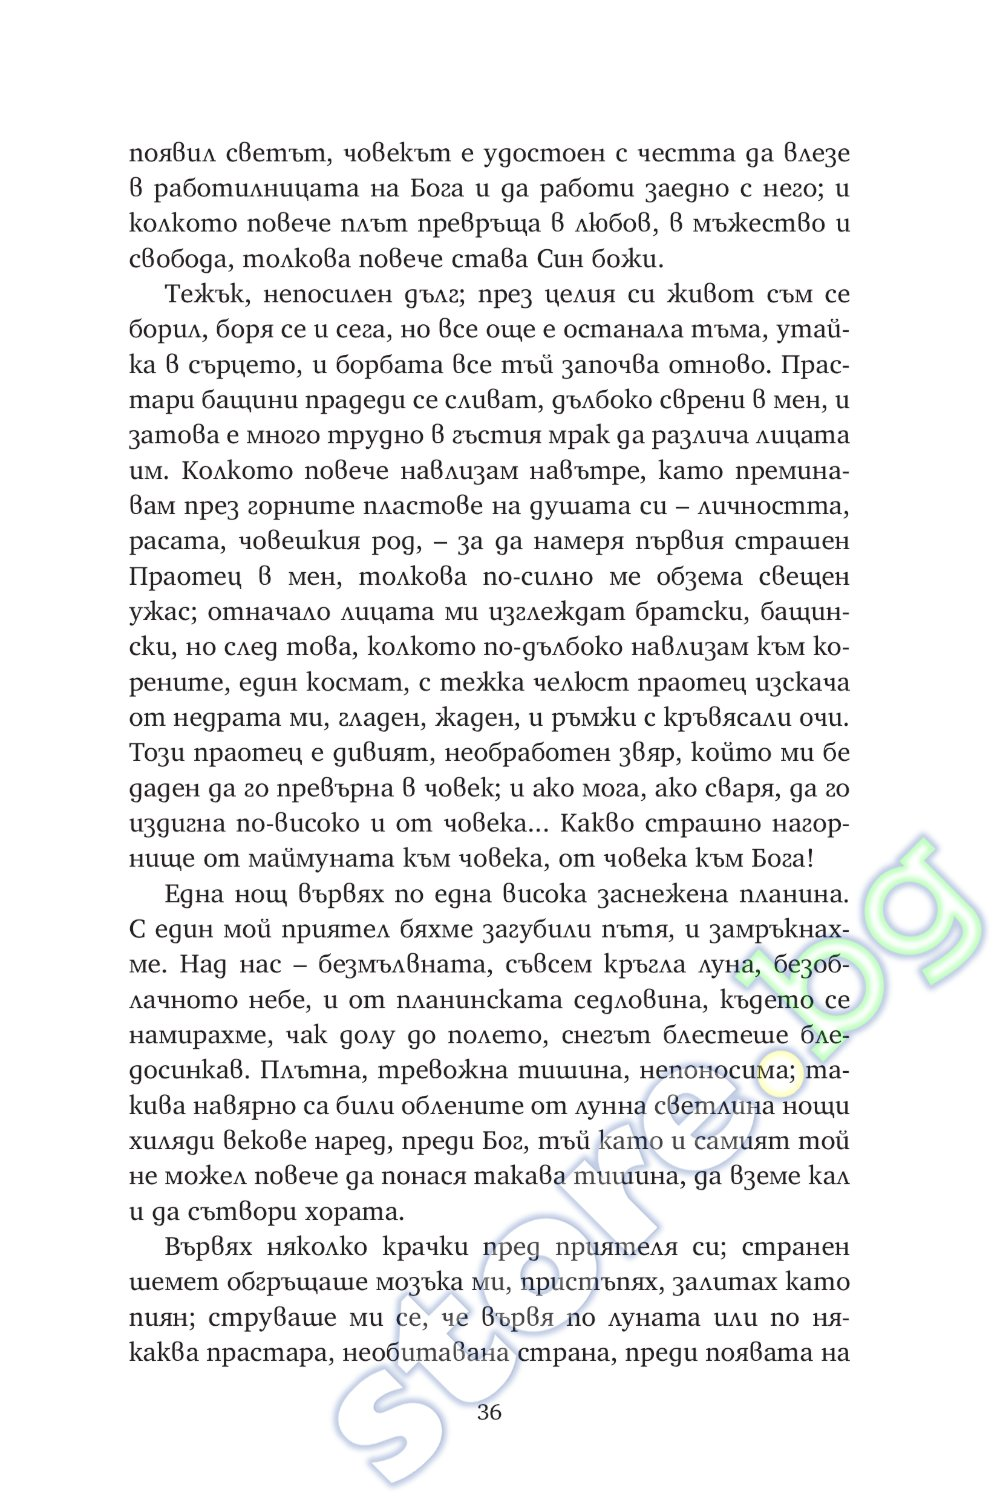 report to greco book · after nearly two weeks of effort, i finally finished nikos kazantzakis' report to greco on sunday this book is extraordinary i mean that in the sense of.